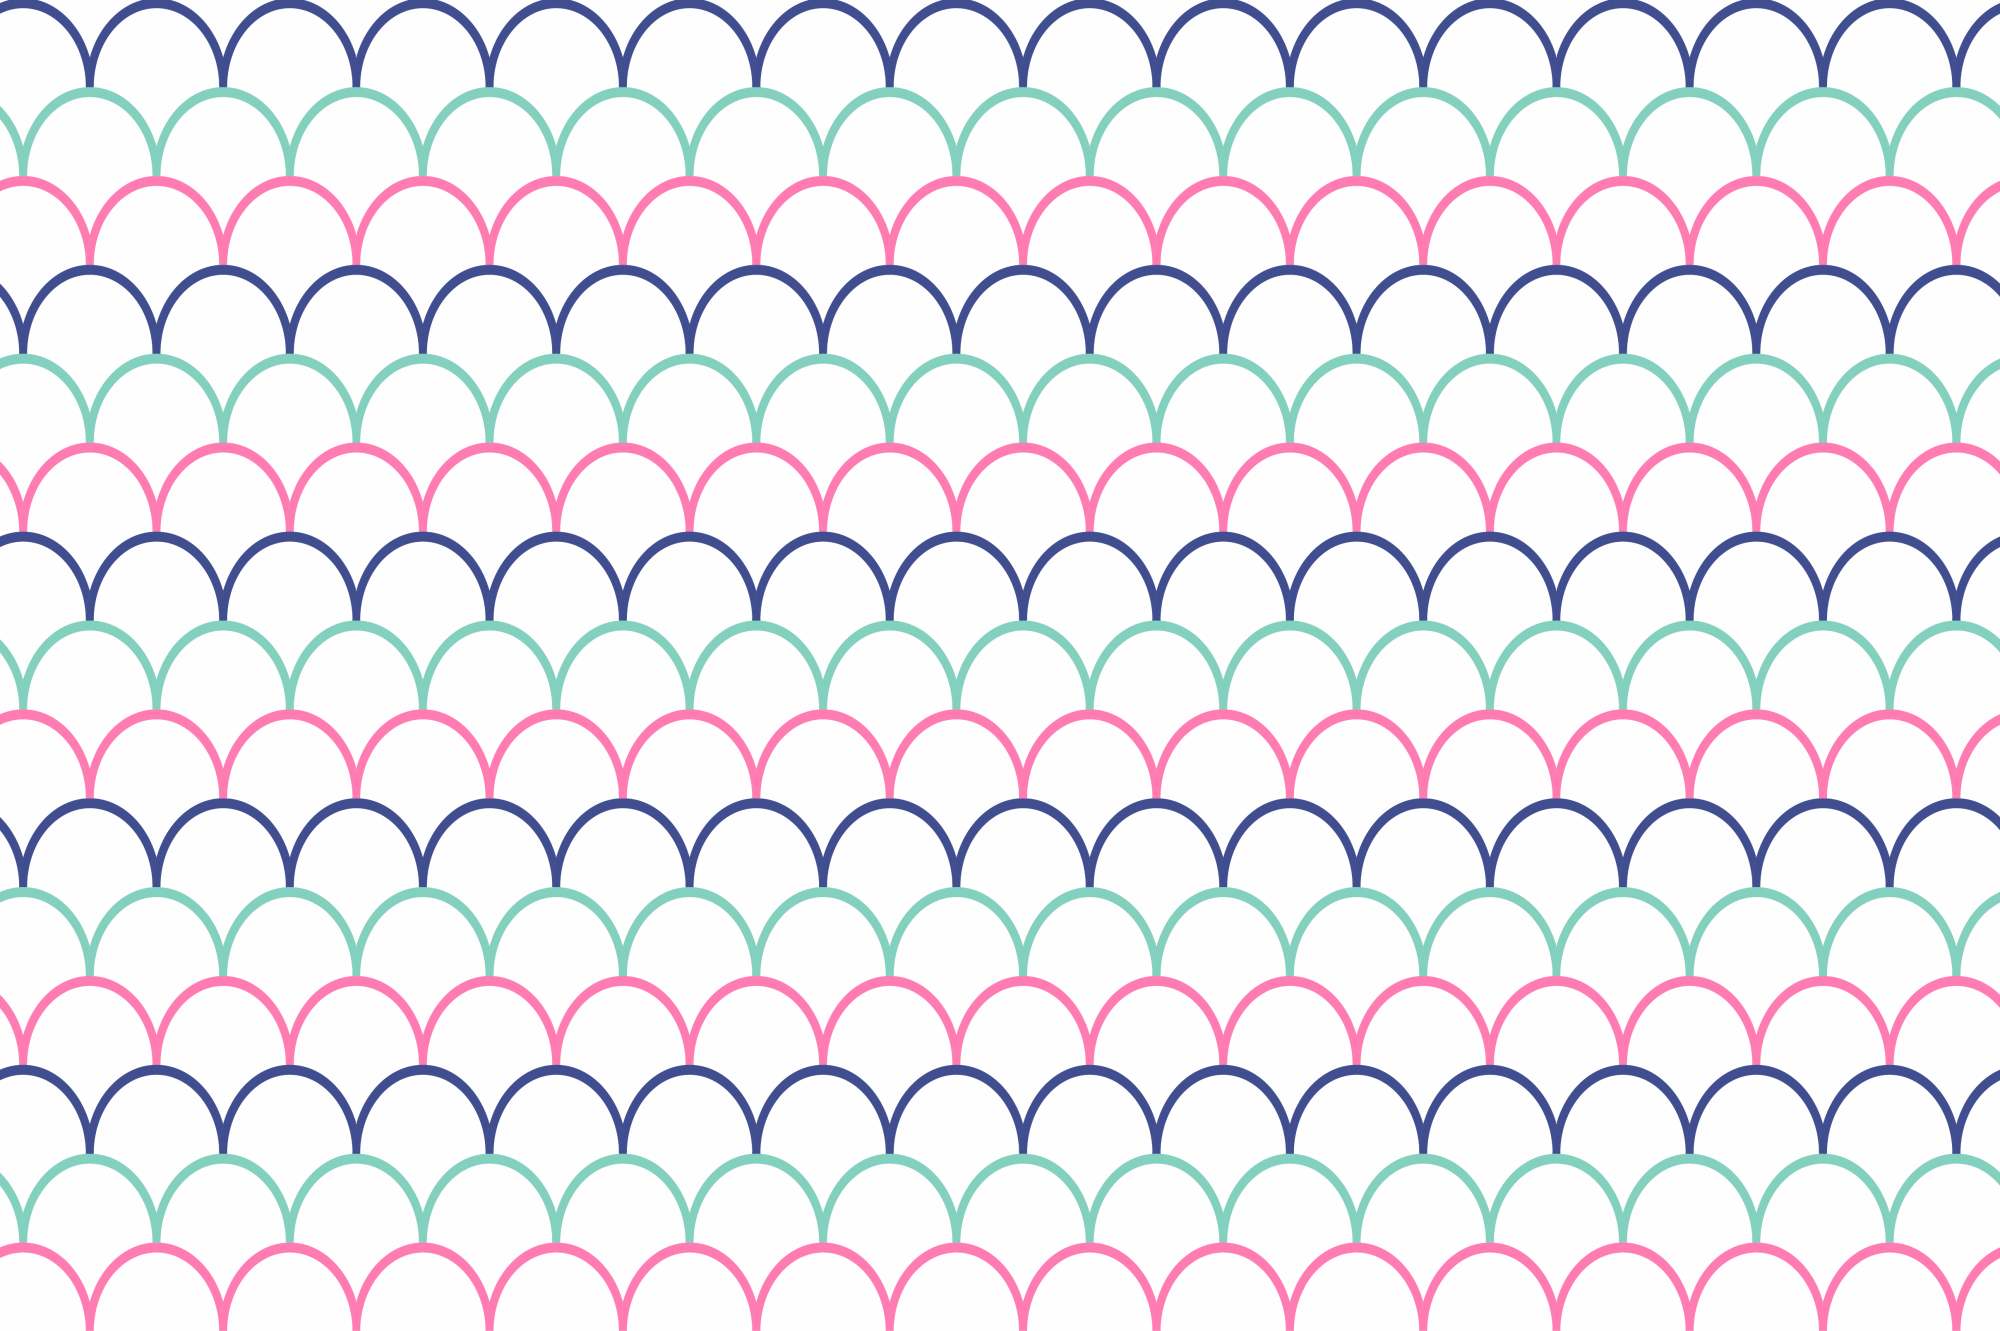 Color geometric patterns - seamless. example image 4